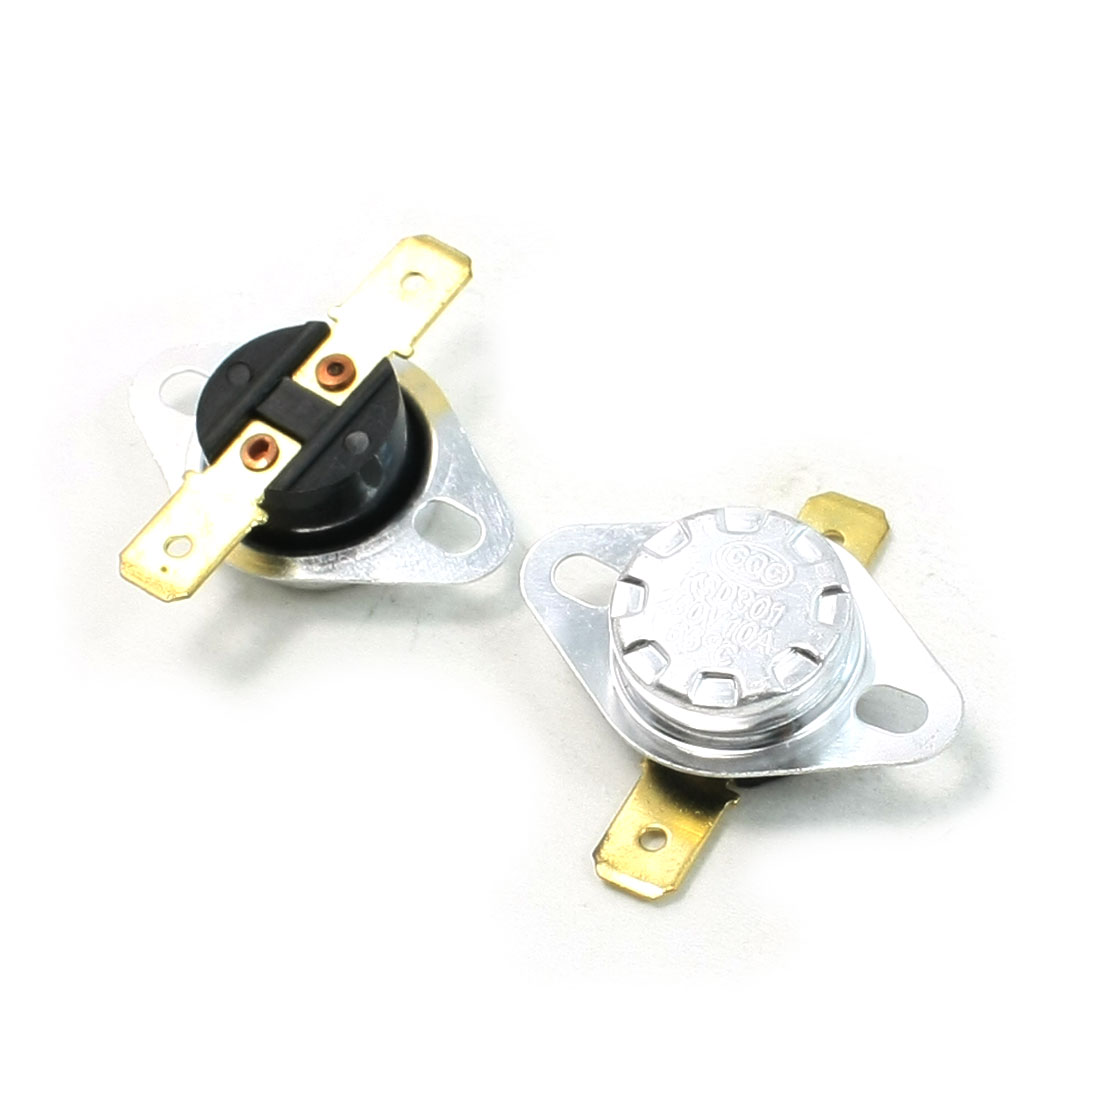 2 Pcs 65C Celsius N/C Soldering Type Temperature Control Switch 10A AC 250V